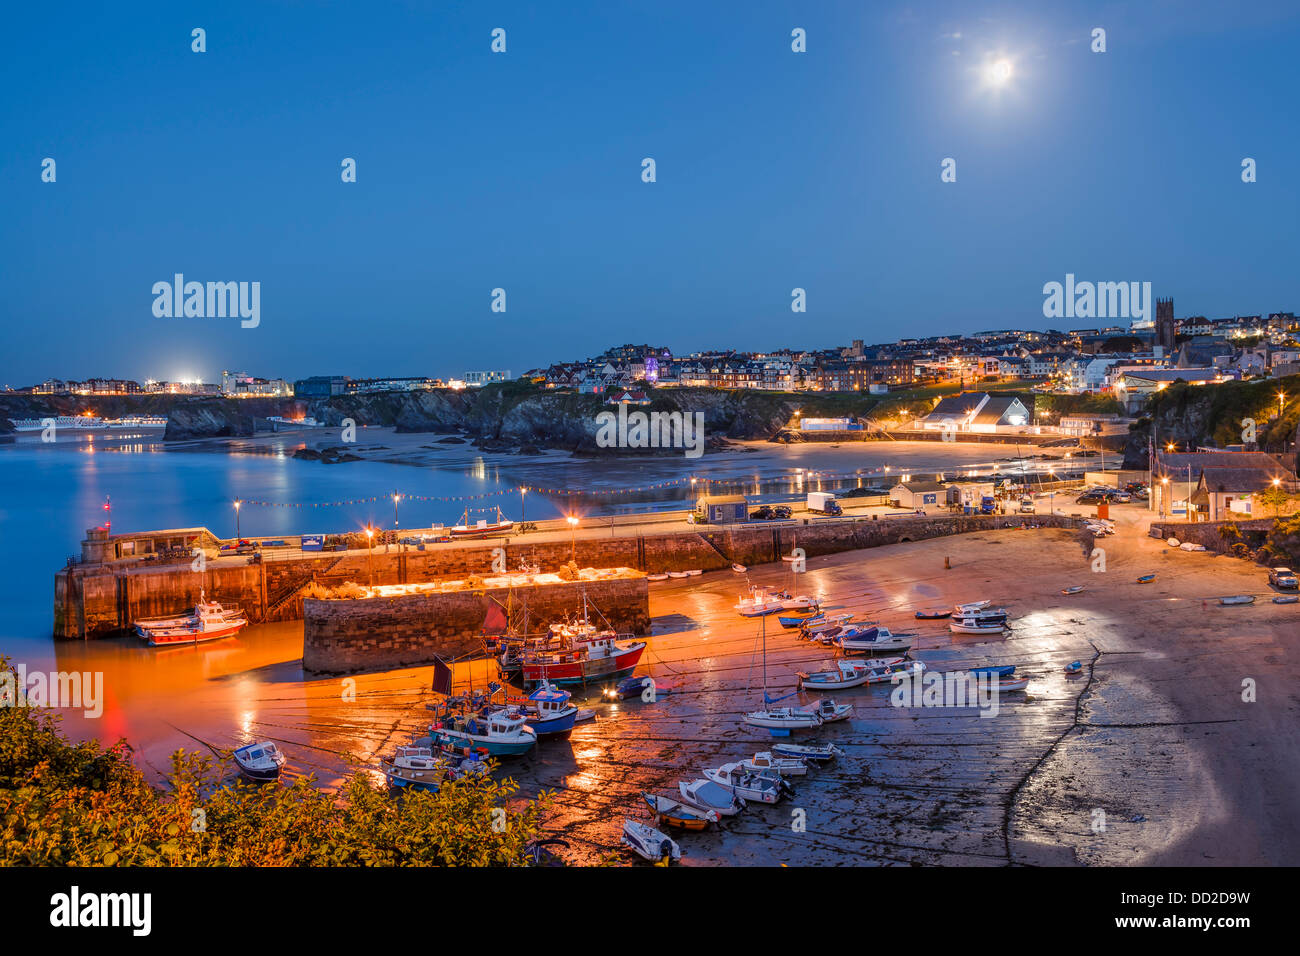 Full moon over the harbour and town at Newquay Cornwall England UK - Stock Image